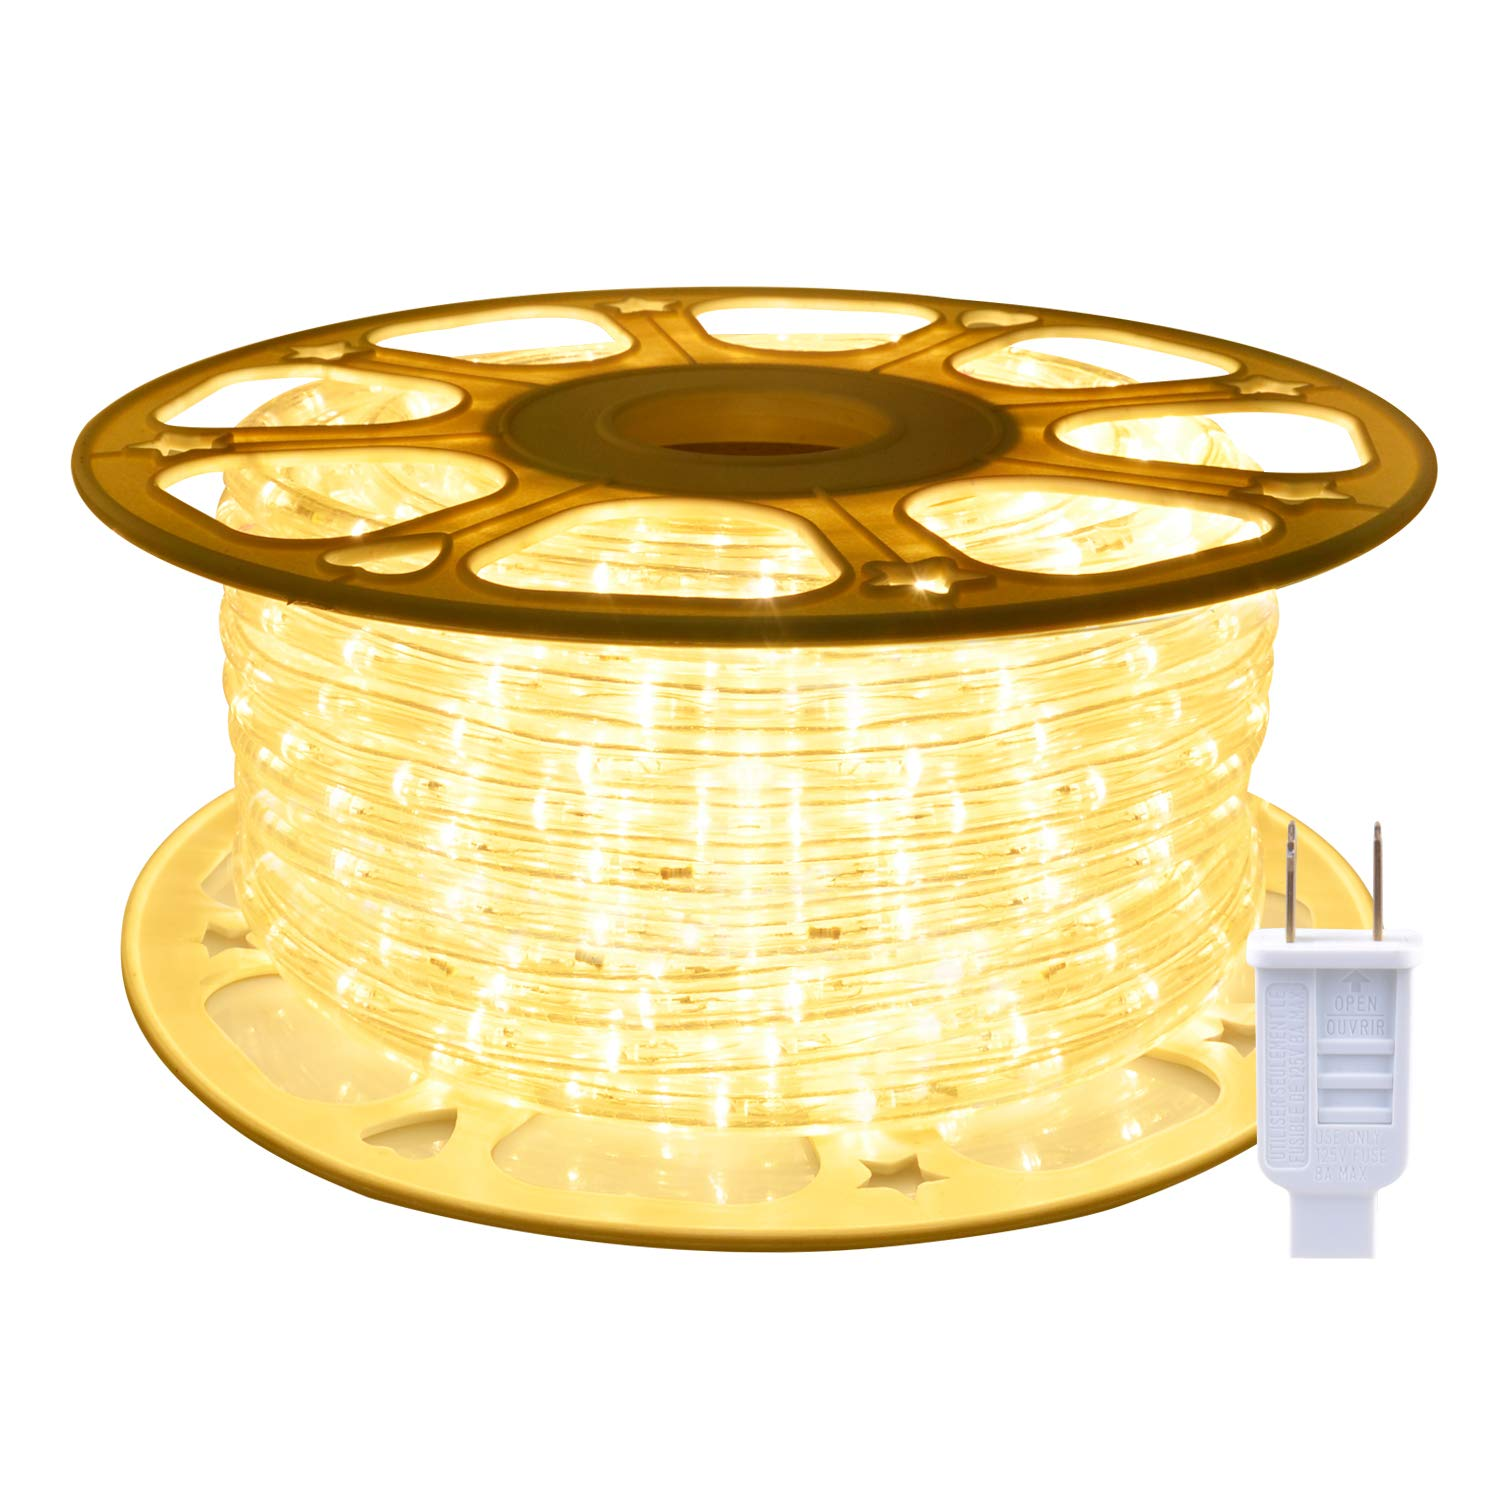 ollrieu 98.4ft/30m LED Rope Lights,Waterproof, Indoor/Outdoor Use,720 Units Warm White 3000K LEDs,110V,UL Listed Power Plug-in,Connectable,Flexible,Decorative Lighting